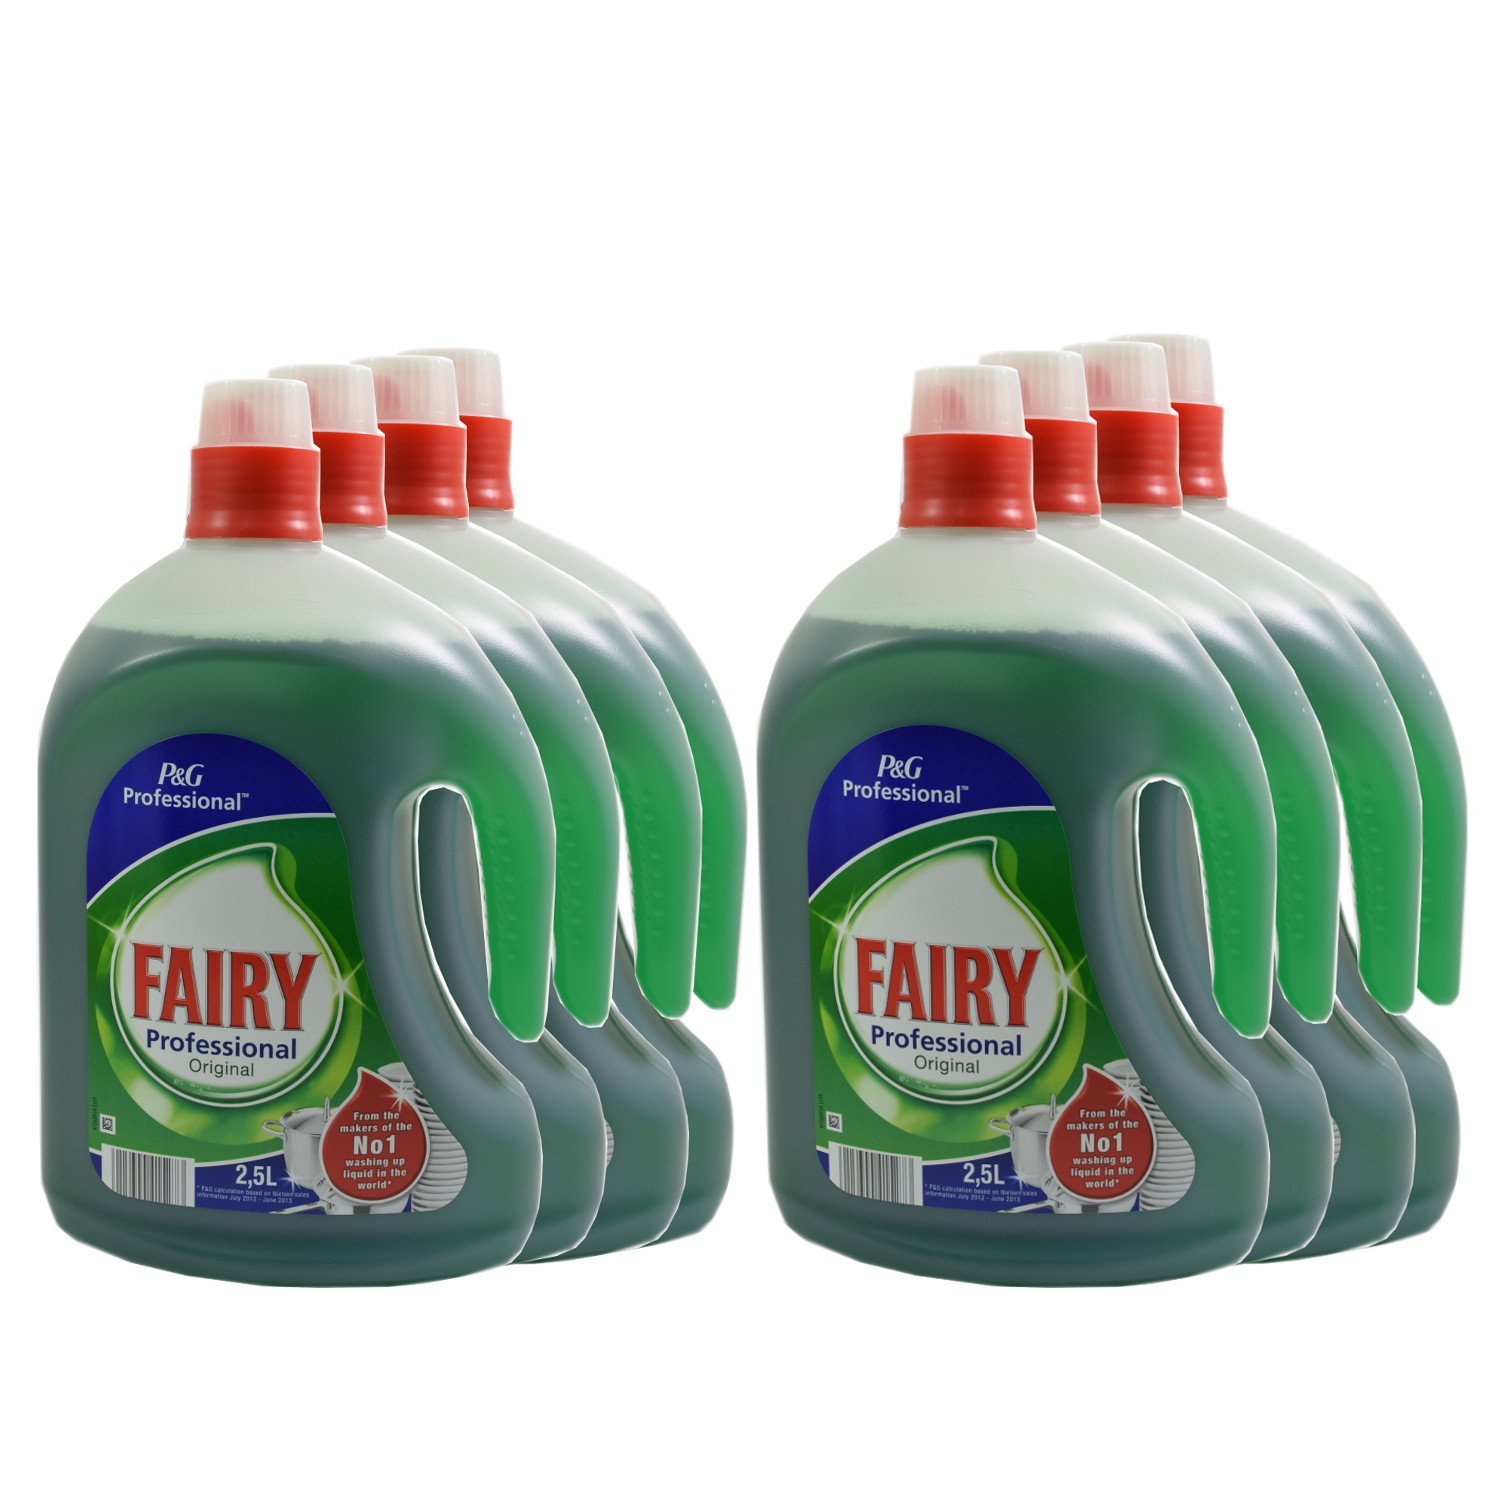 8x Fairy Professional Original